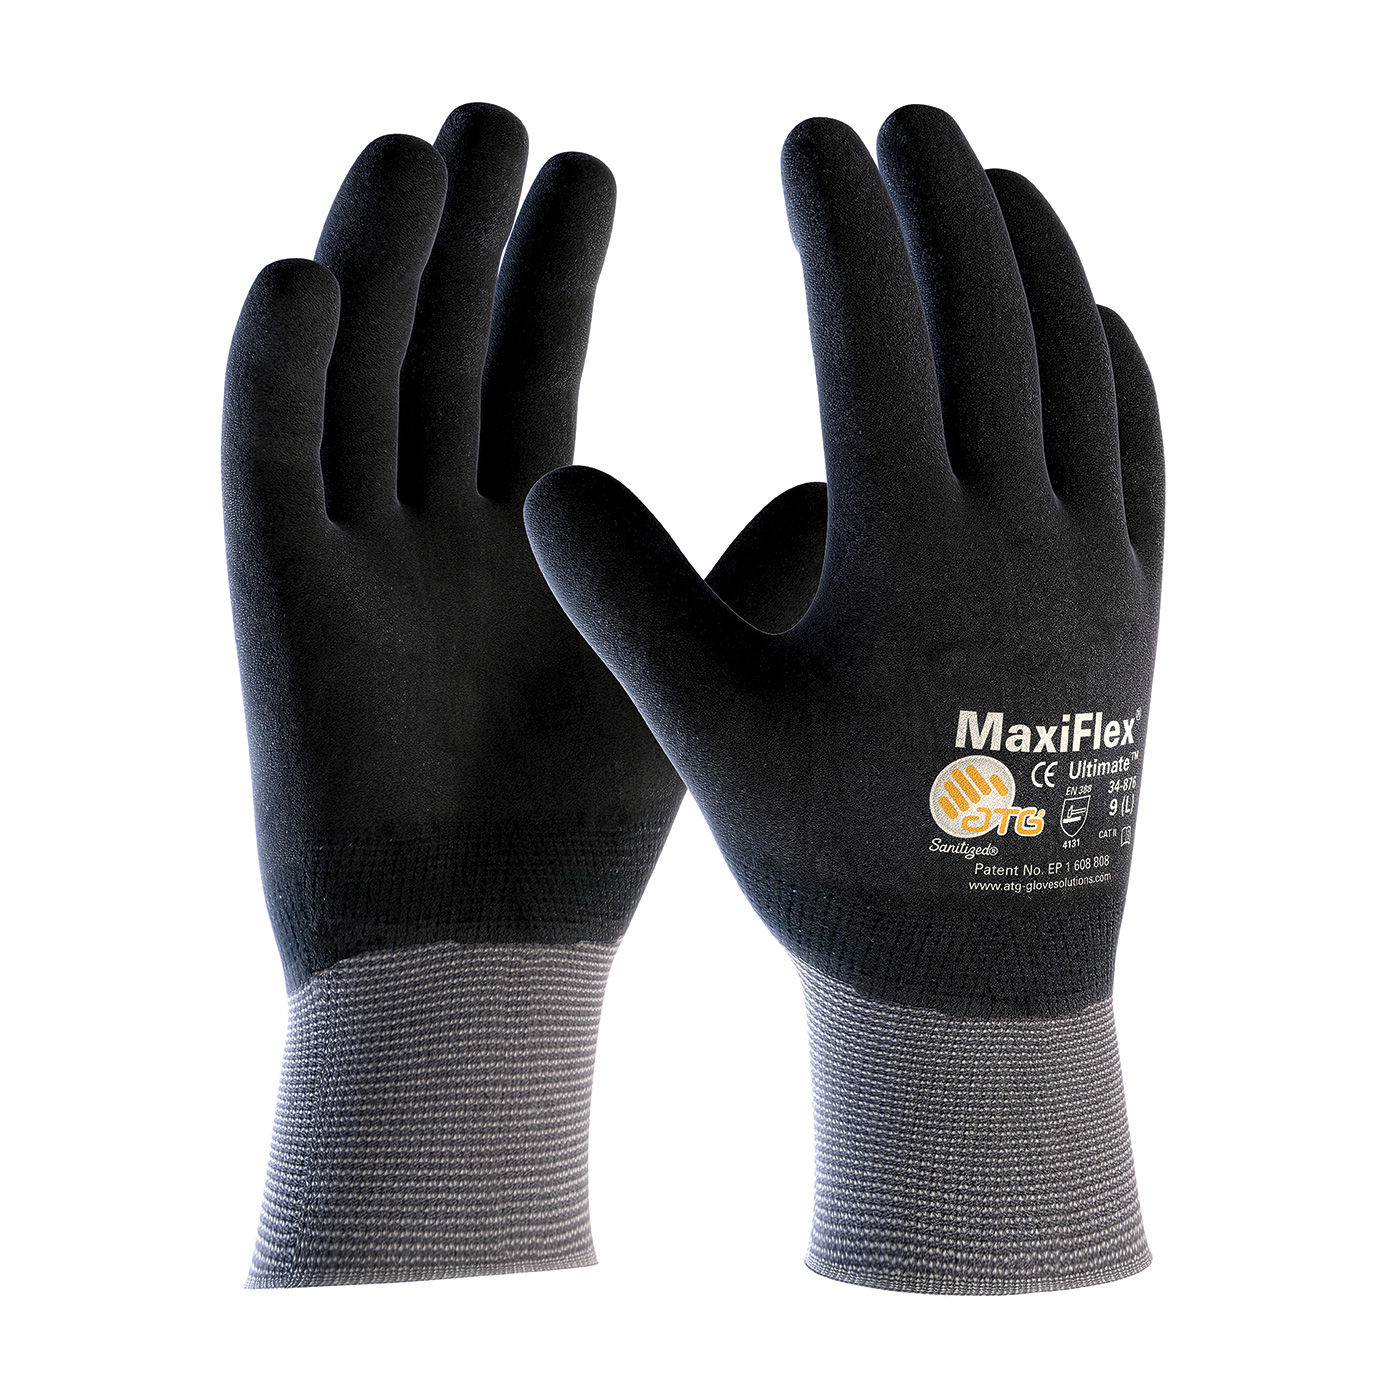 #34-876 PIP® MaxiFlex® Ultimate™ Seamless Knit Nylon / Lycra Glove with Nitrile Coated MicroFoam Grip on Full Hand